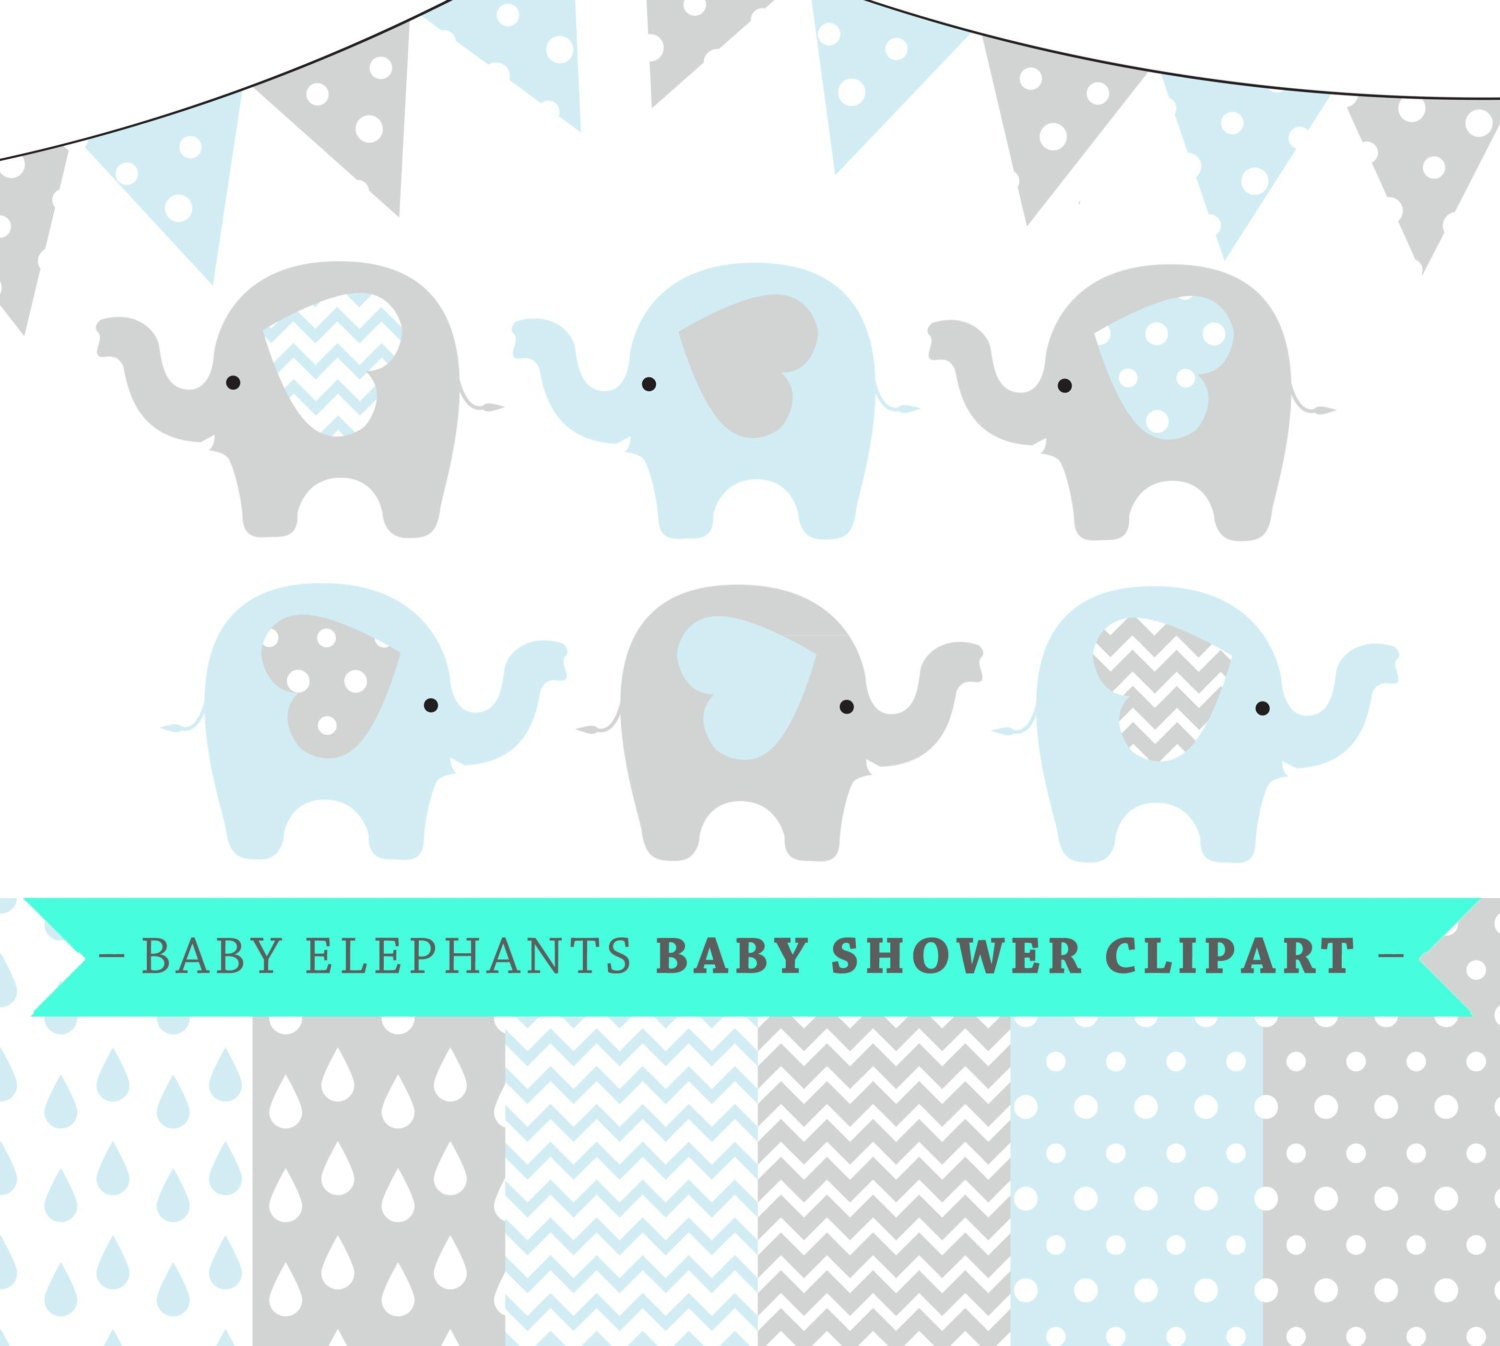 Premium baby shower vector clipart Baby elephants blue and